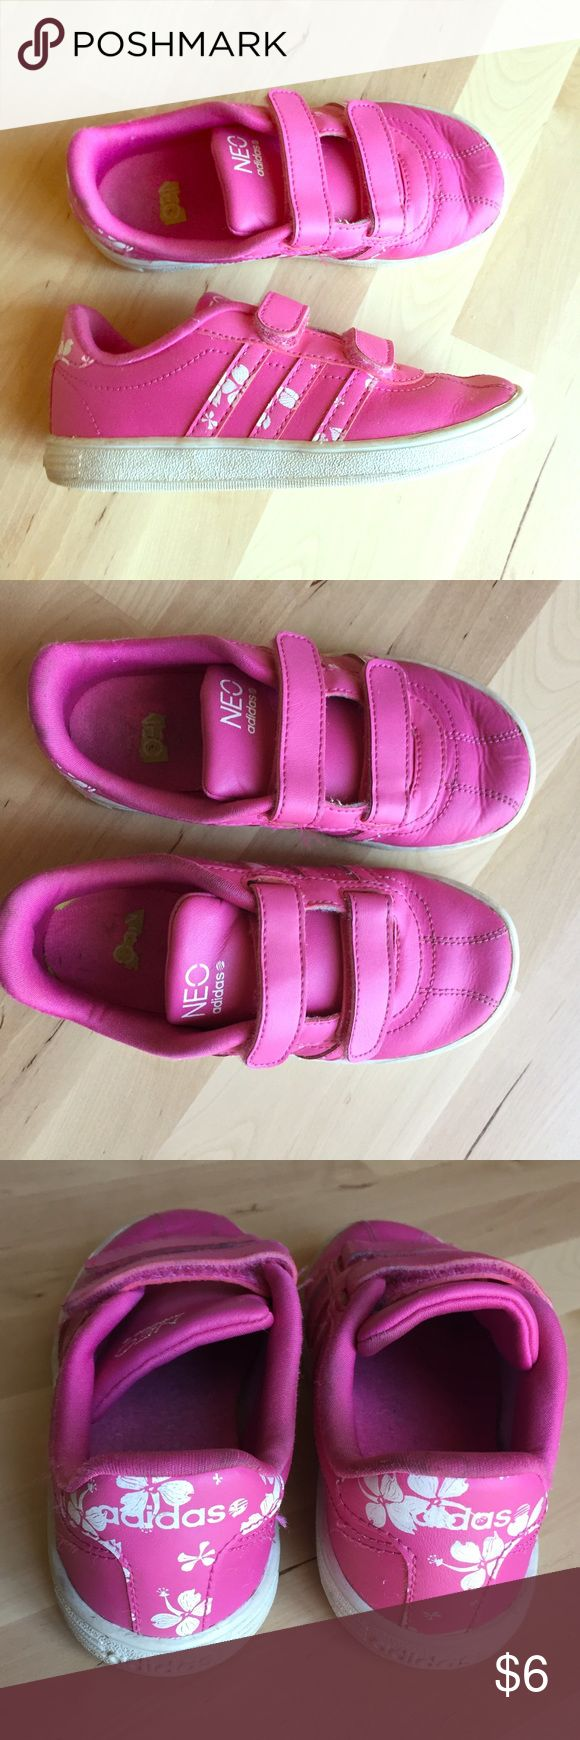 Adidas neo sneaker Cute adidas NEO sneakers pink. My daughter wore them a lot. No holes! Soles have some discolorations. Adidas Shoes Sneakers